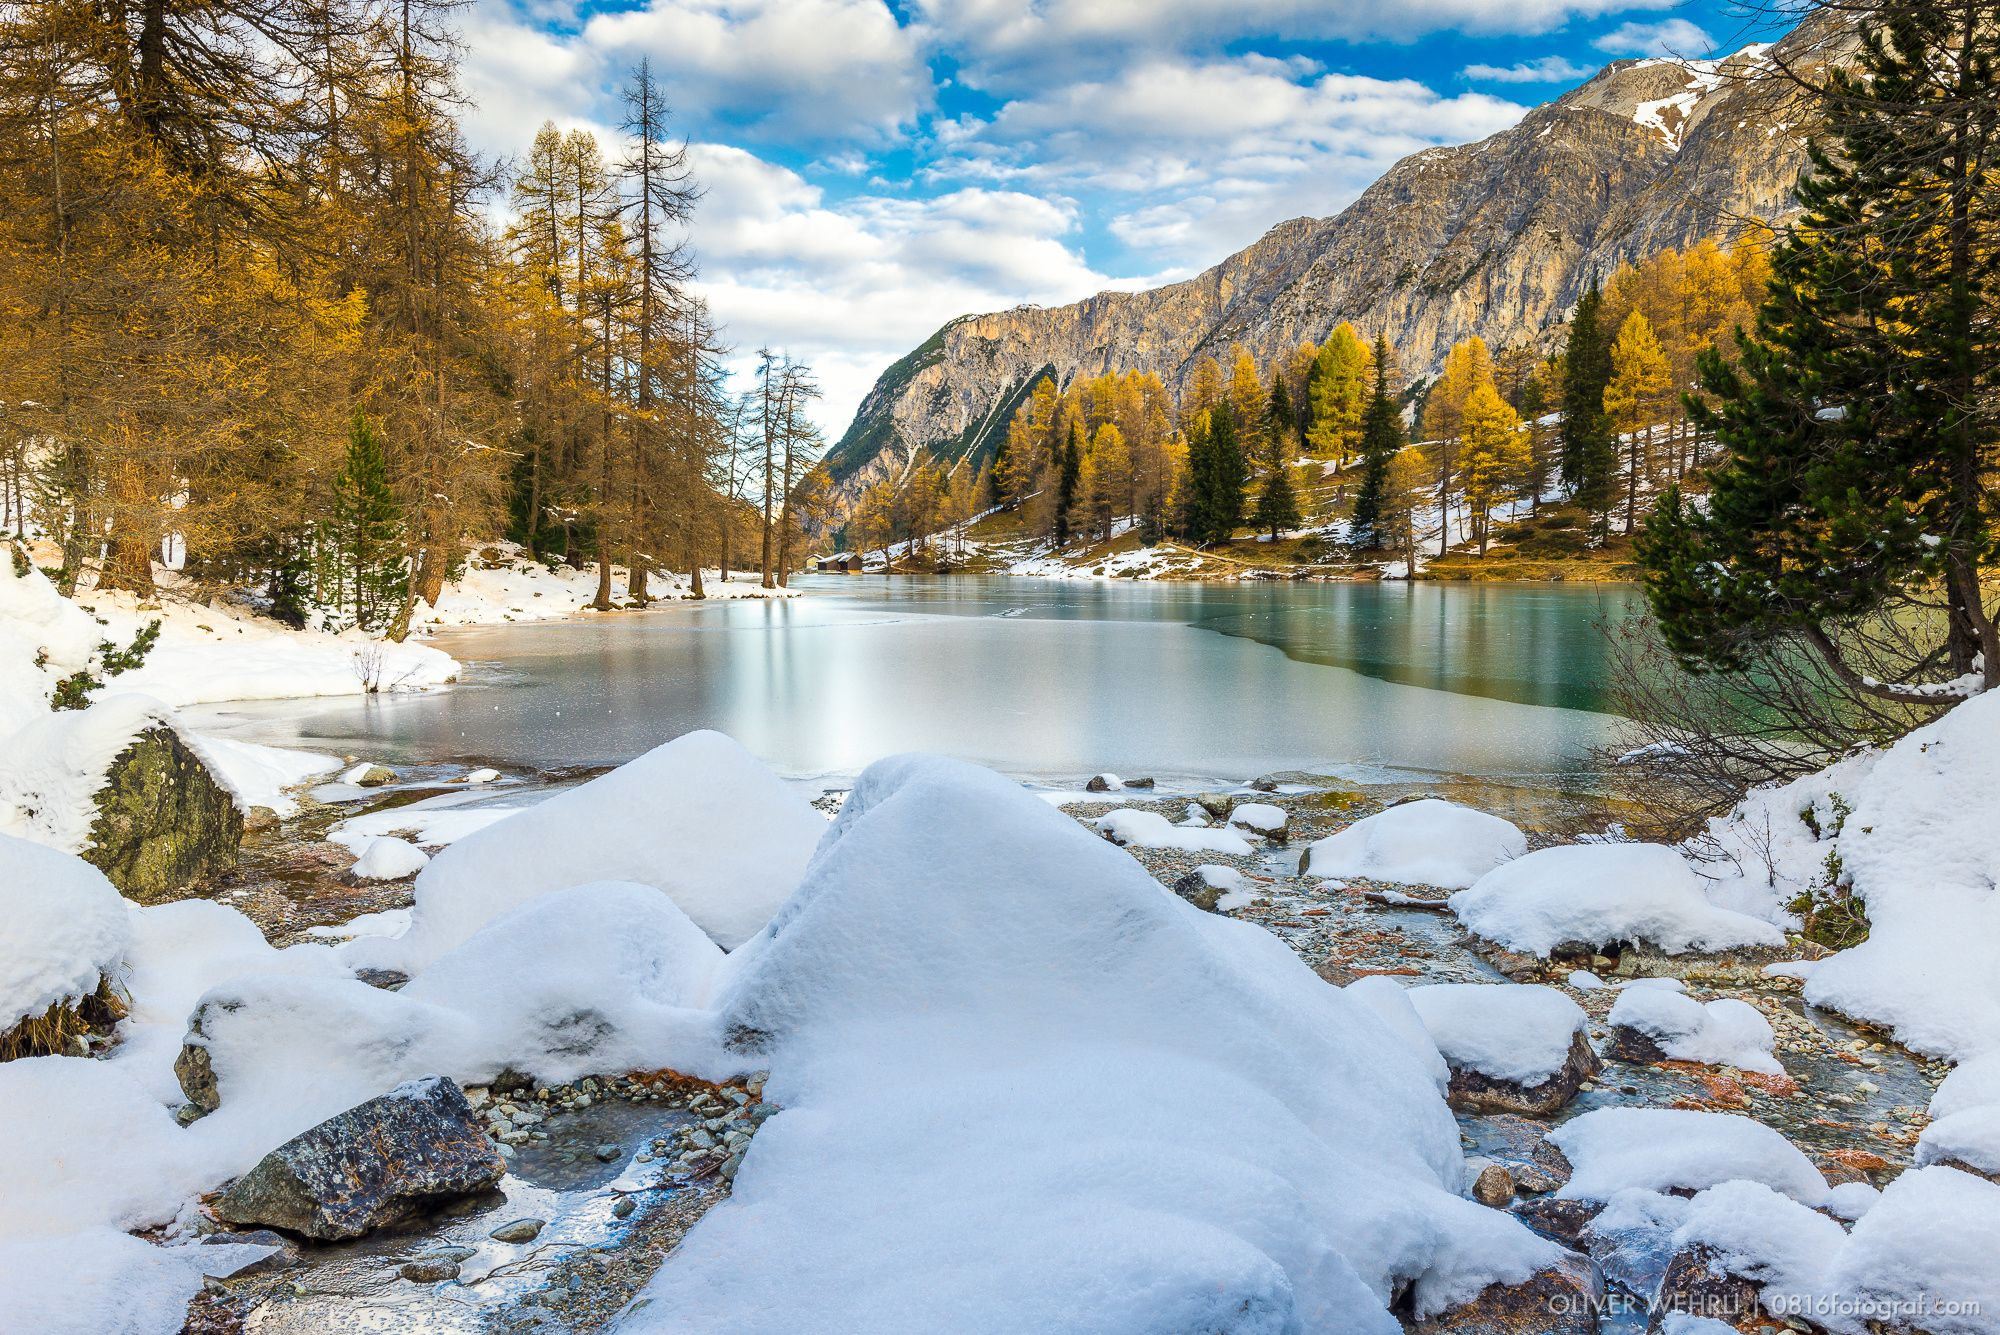 Lai di Palpuogna by Oliver Wehrli on 500px